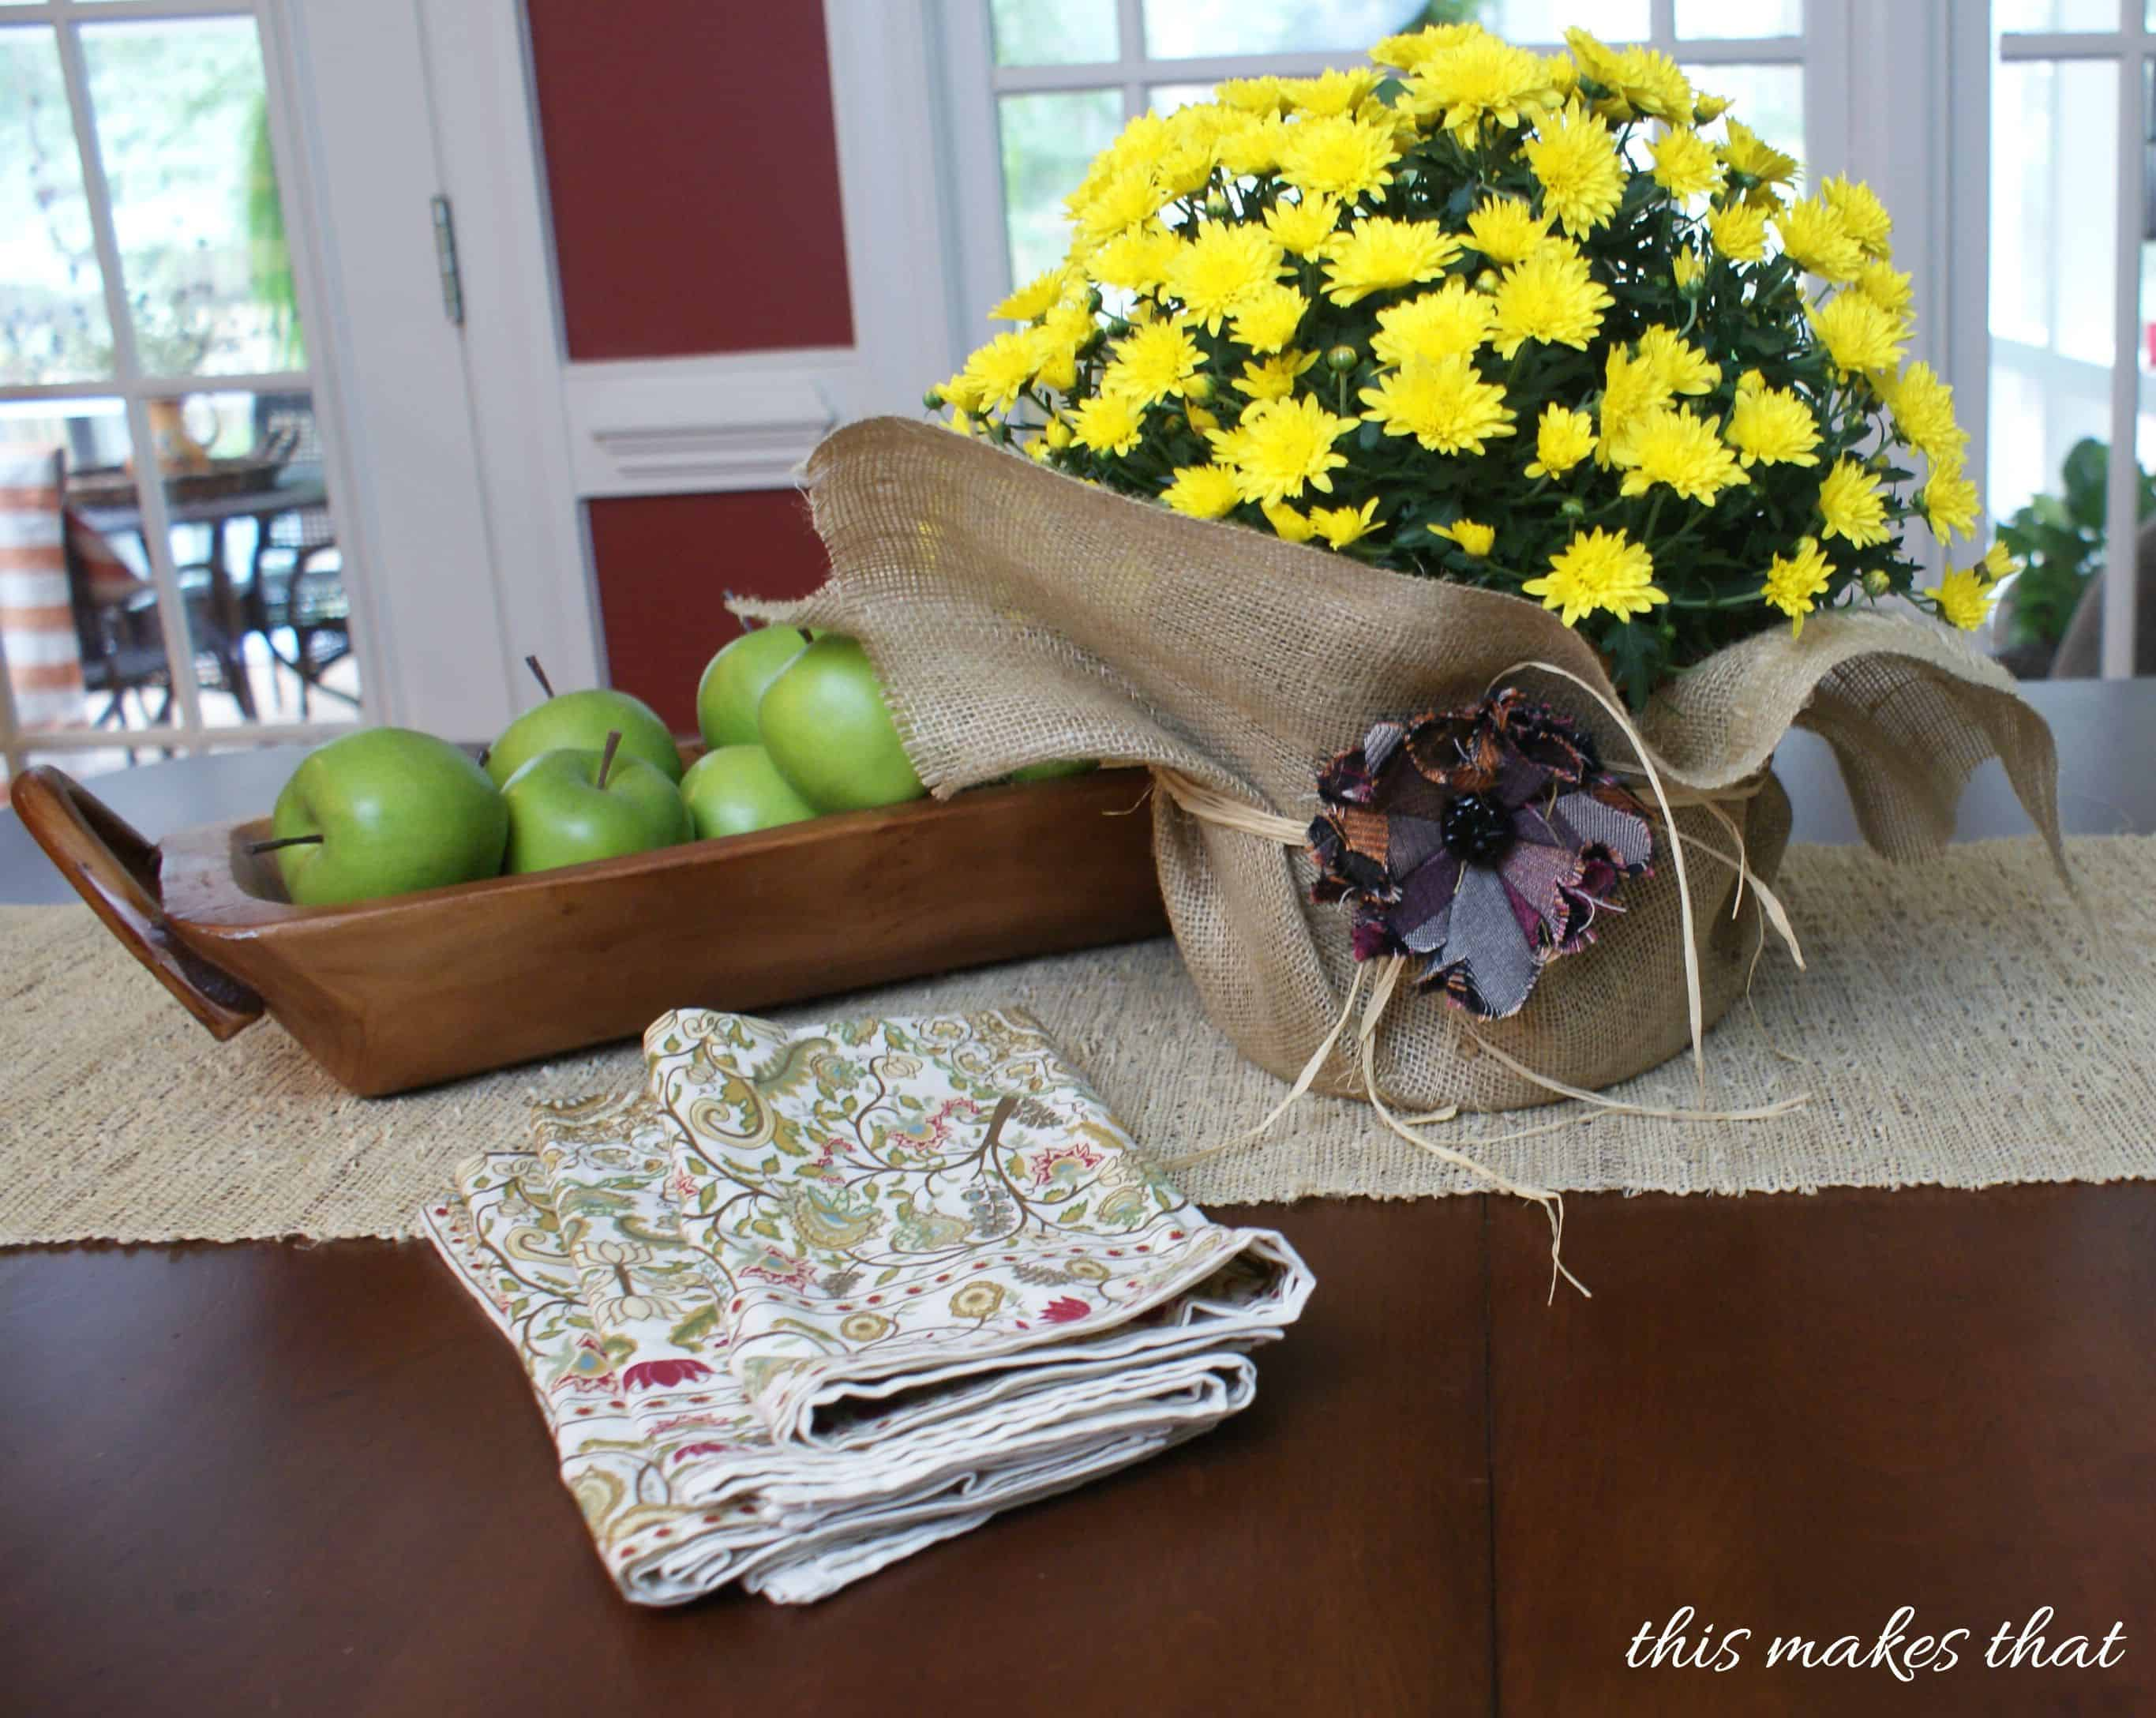 burlap with apples